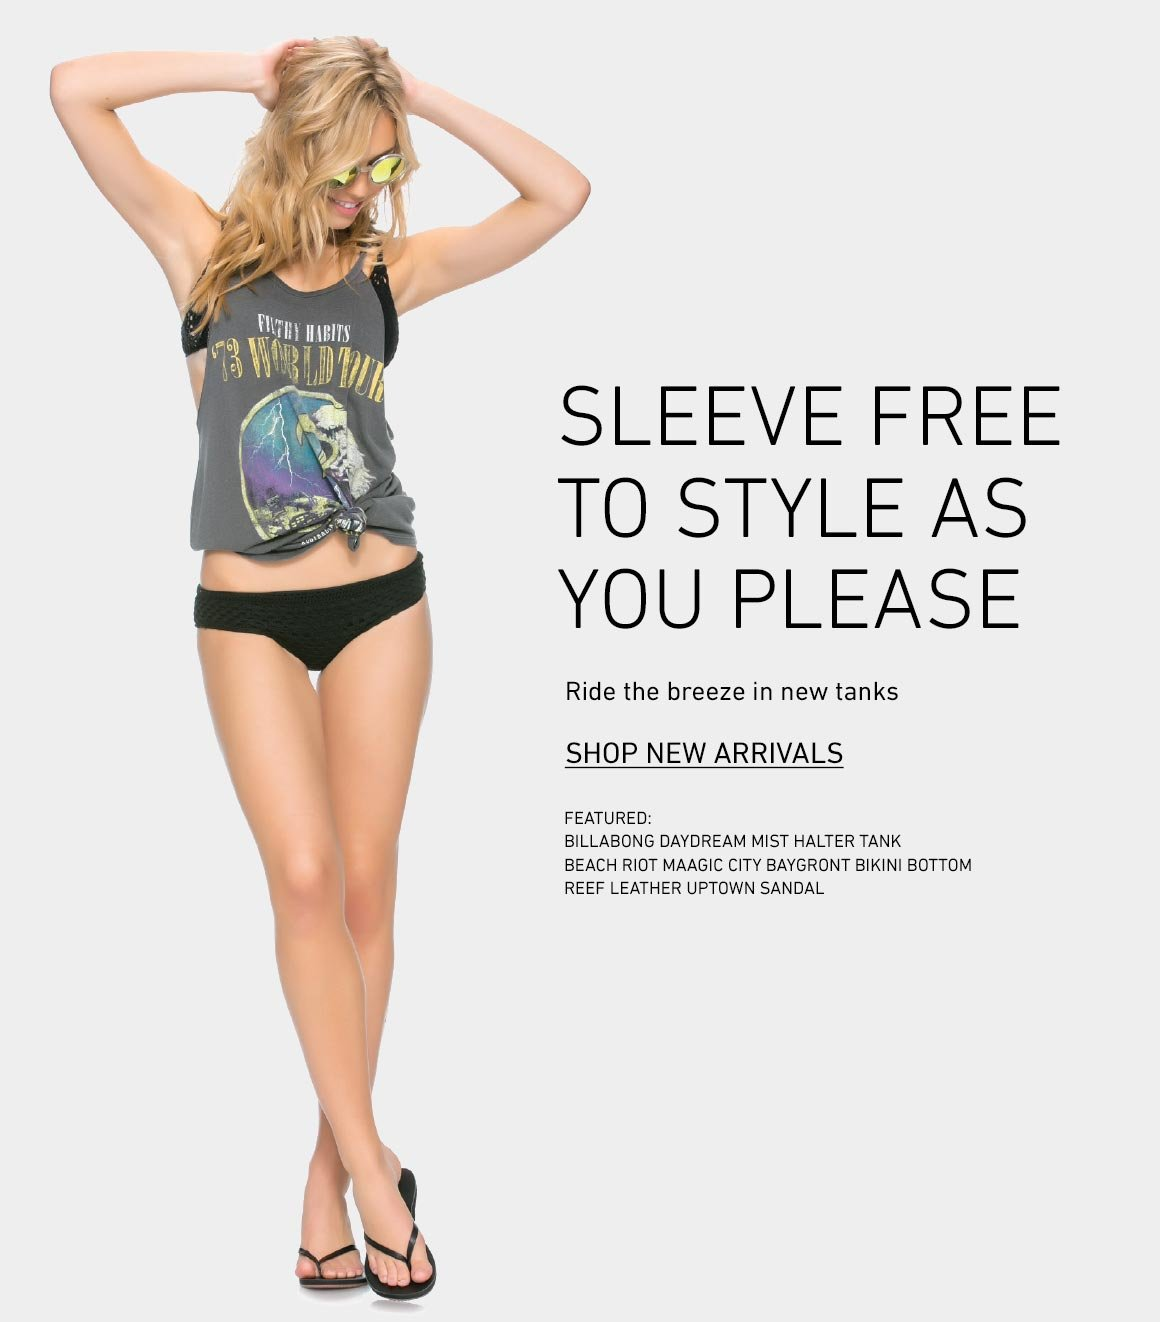 Sleeve Free Style: New Tanks